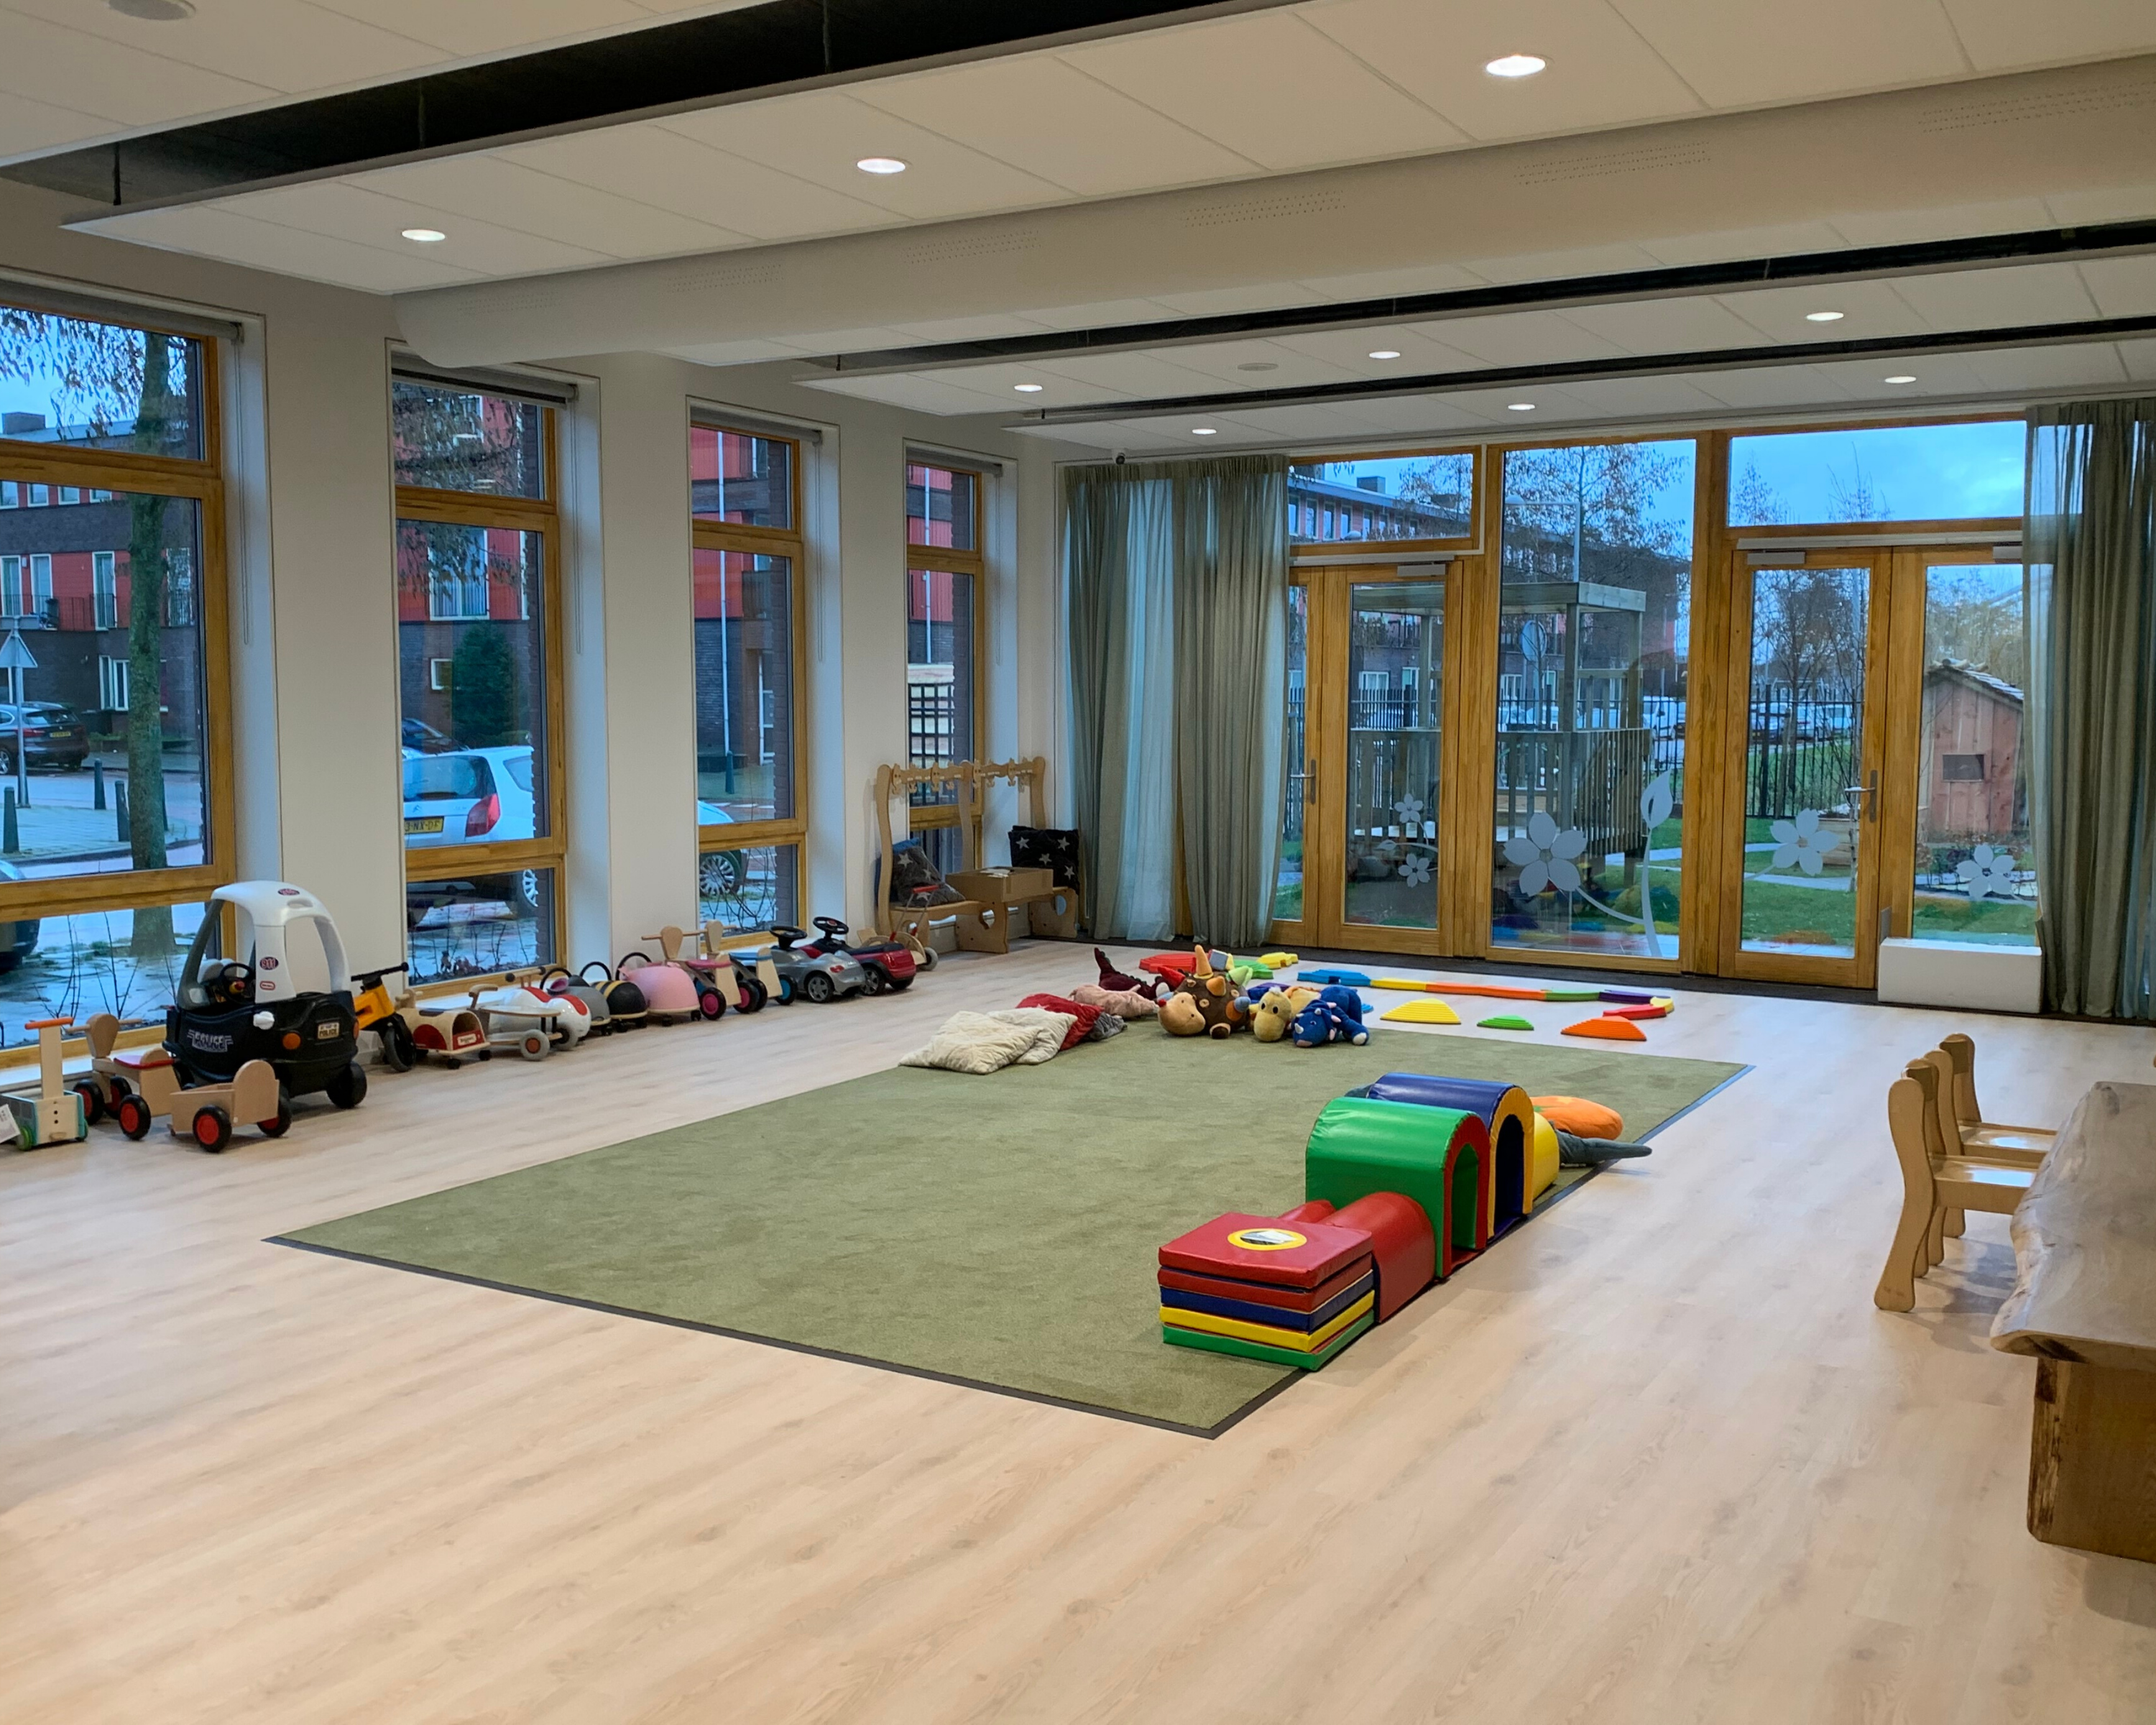 Children's toys and play area in day care hall.